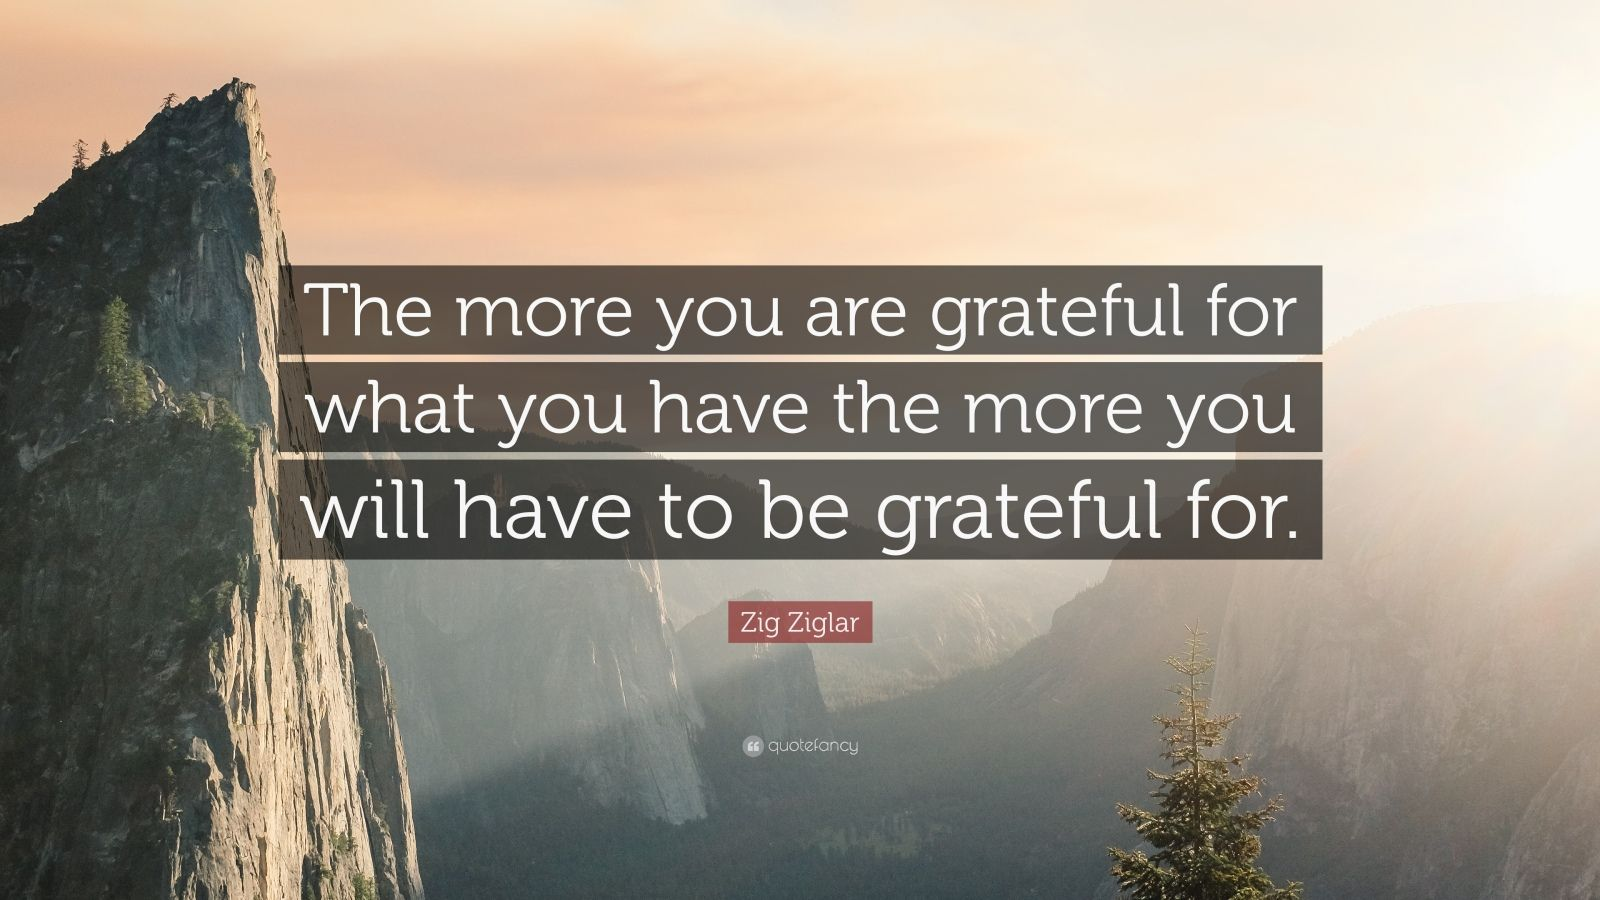 Zig Ziglar Grateful Quotes